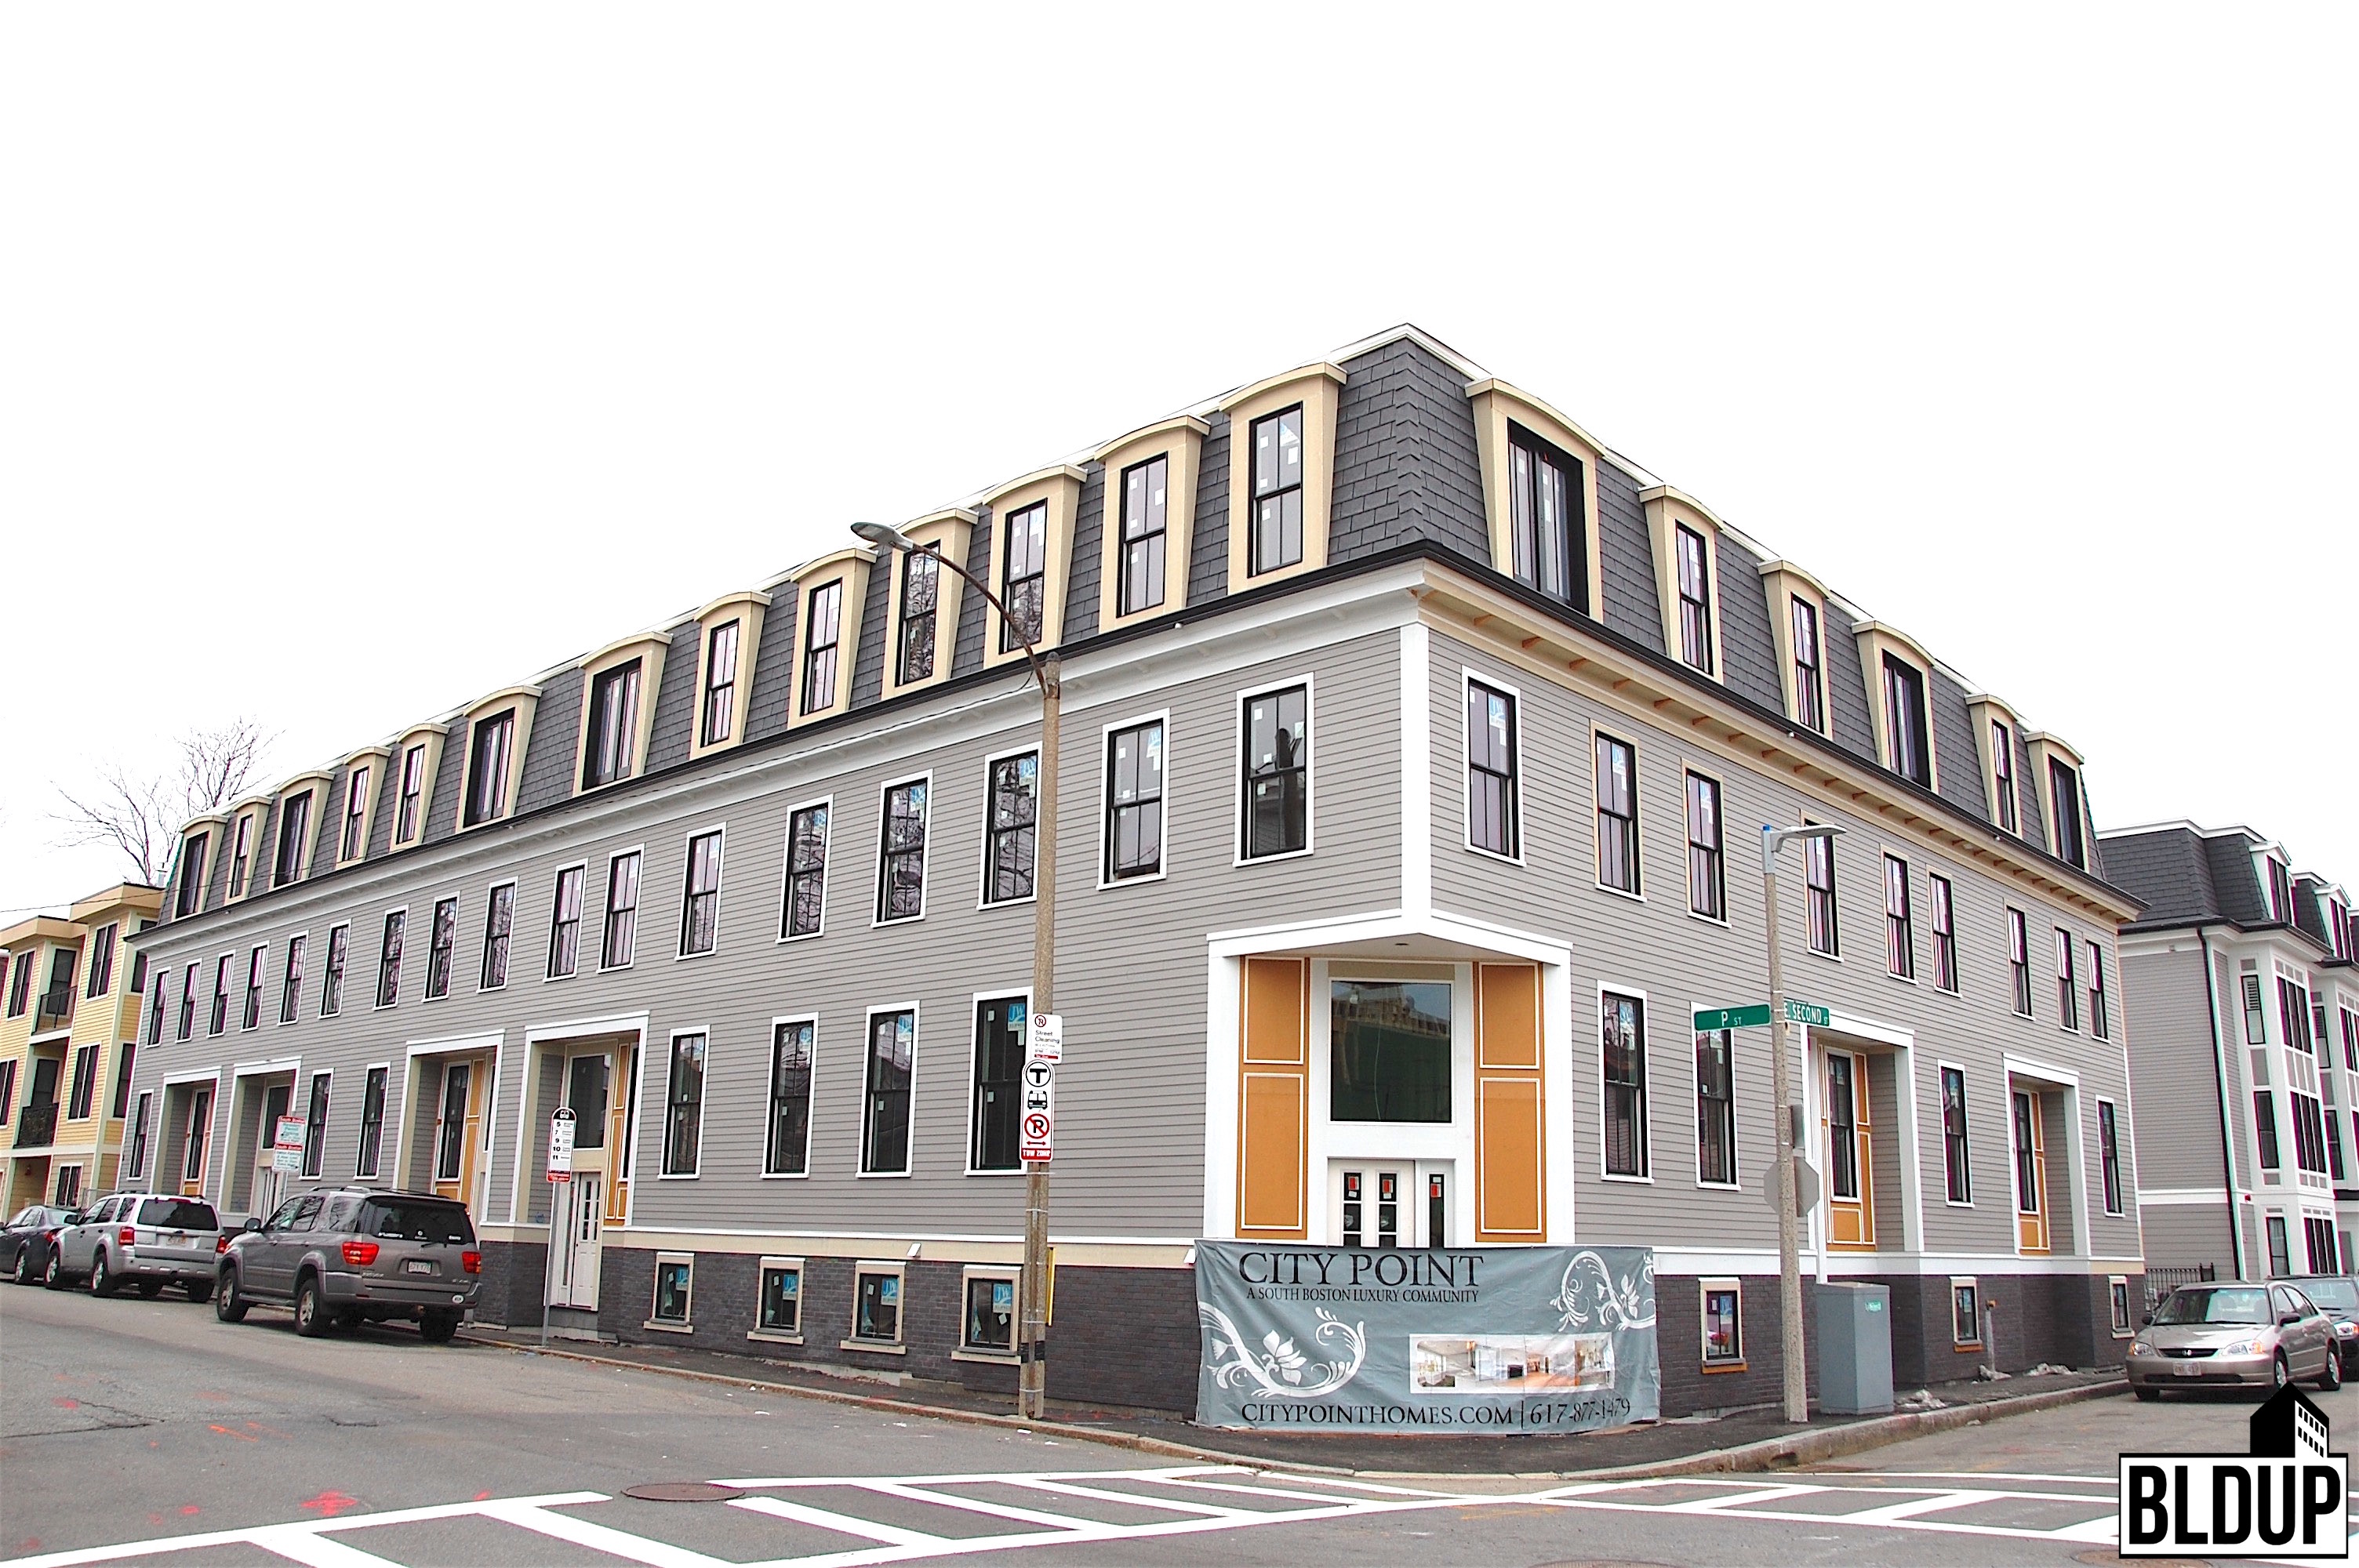 881 883 east second street city point south boston southie 881 city point llc stephen t pitrowski joe hassell development arthur choo and company residential 1